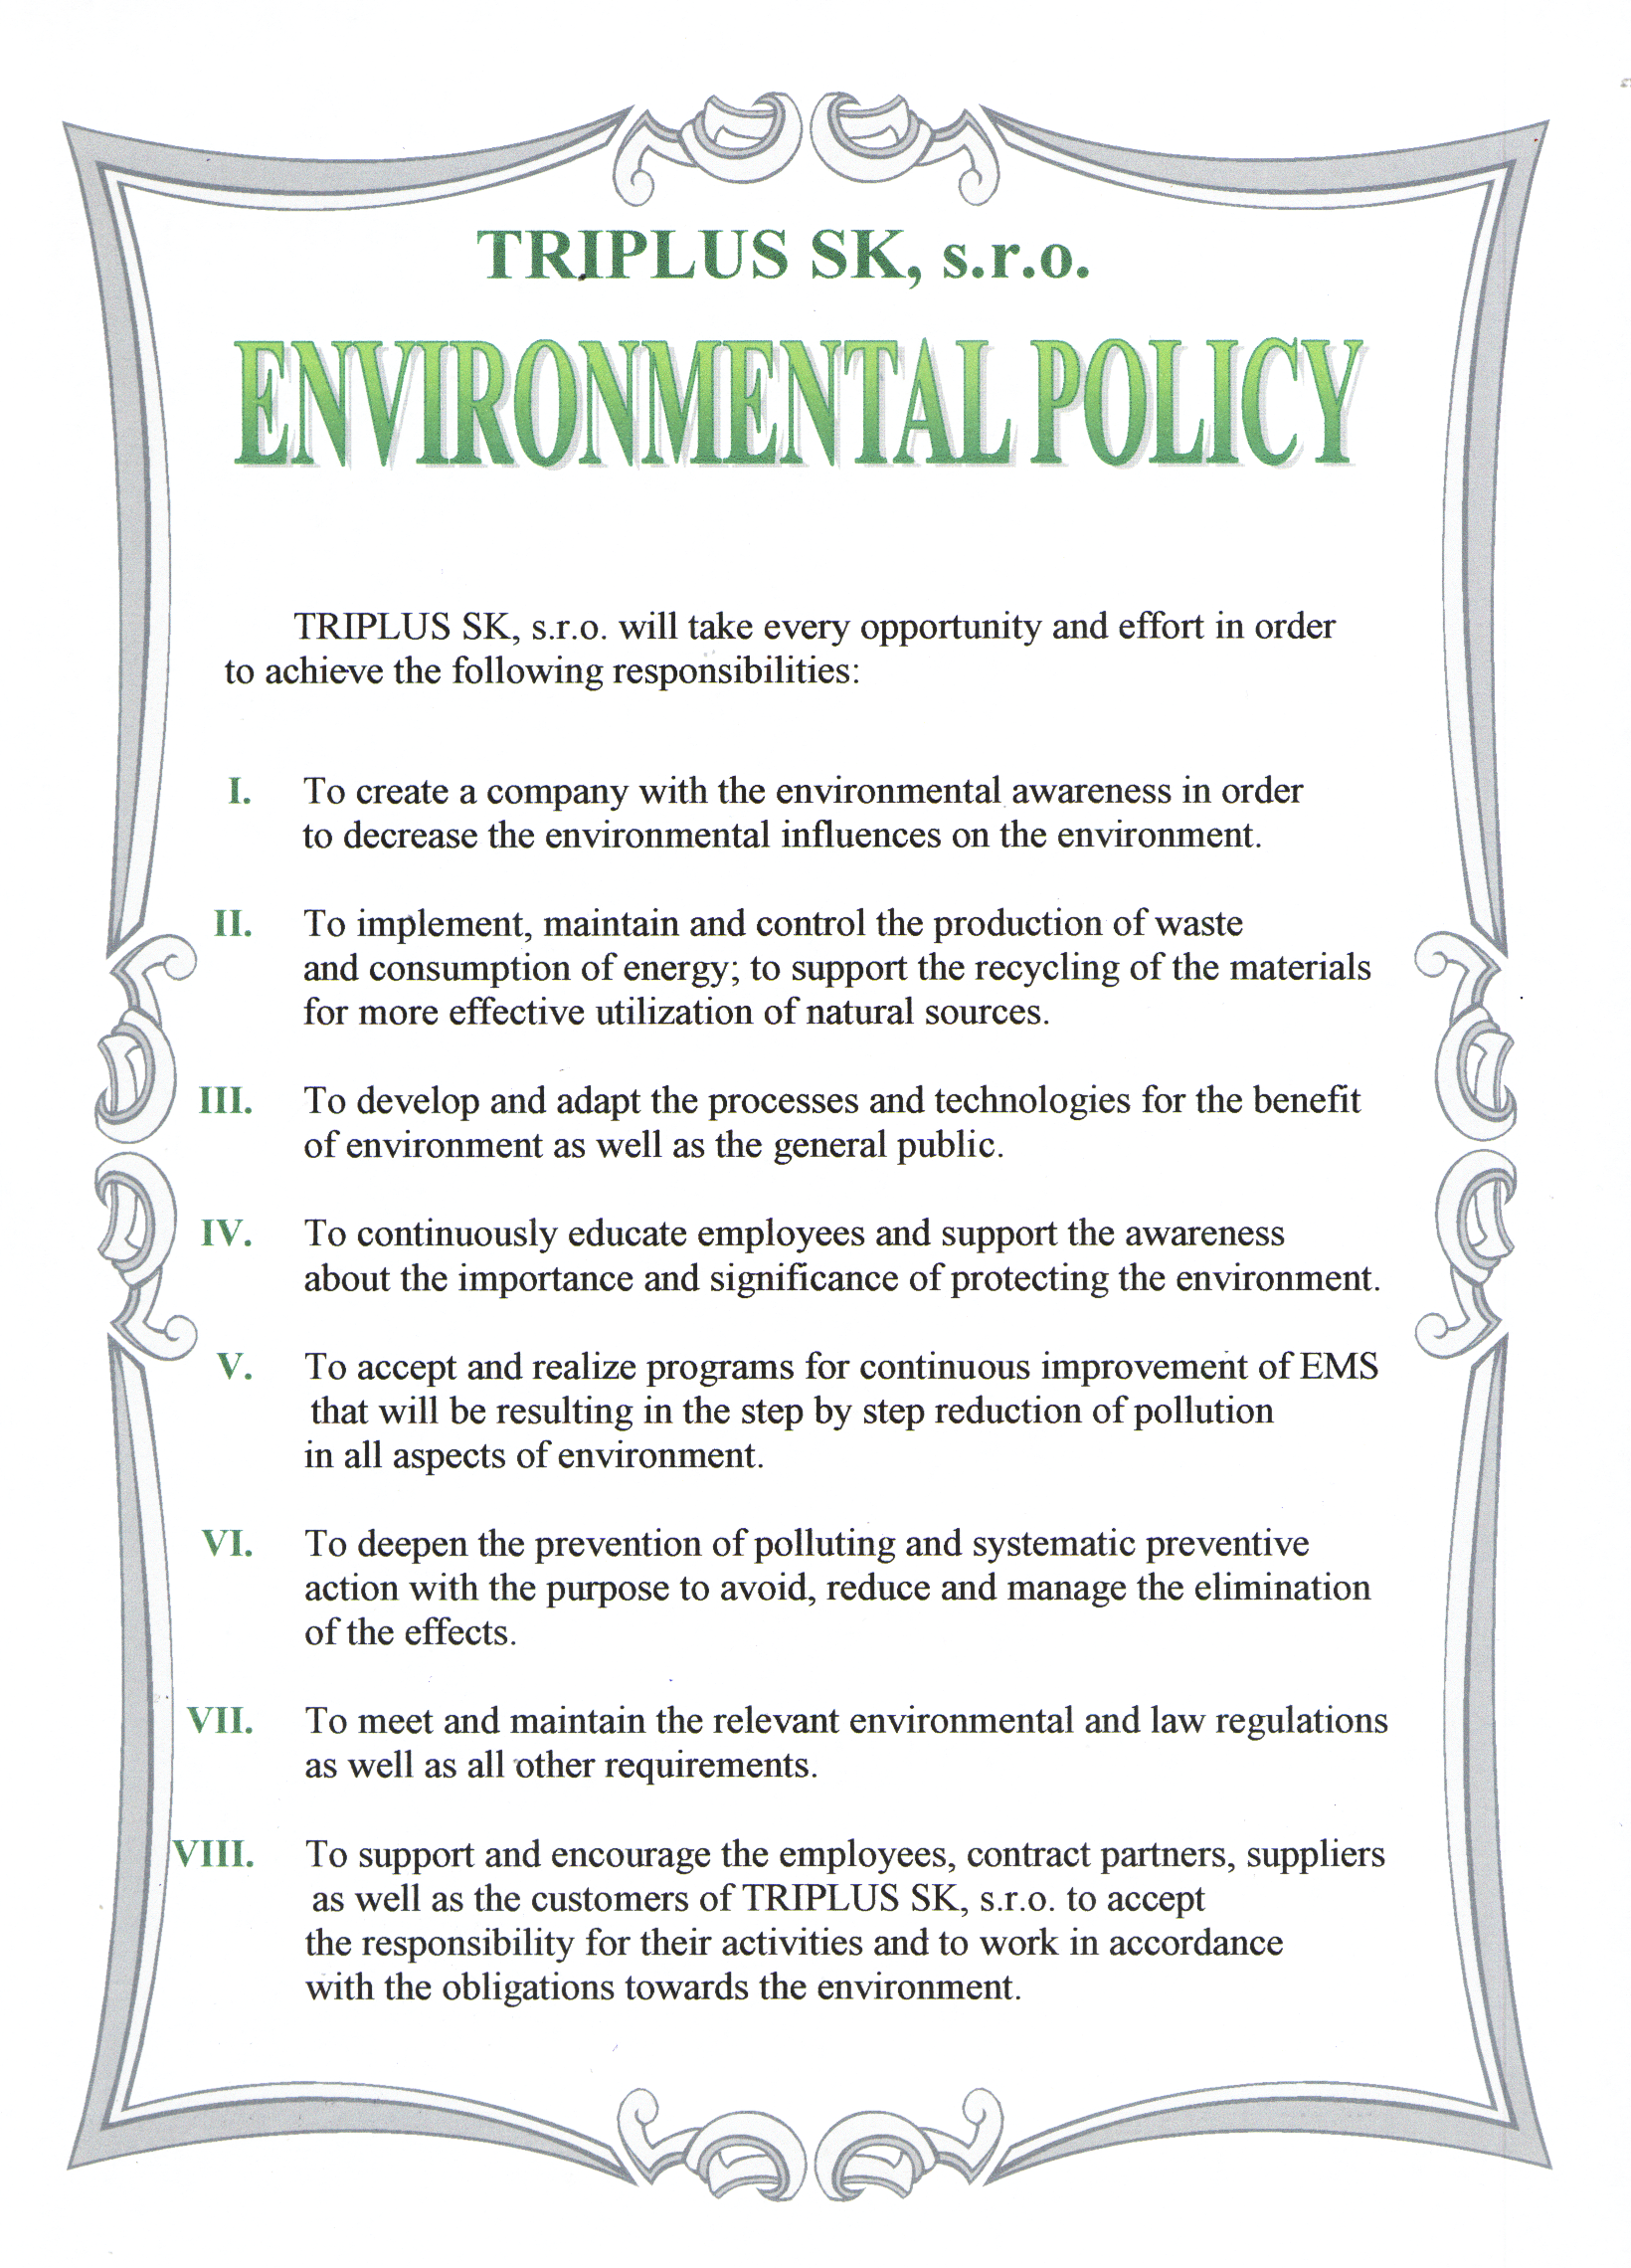 Environmental-policy-e1396273389279.png